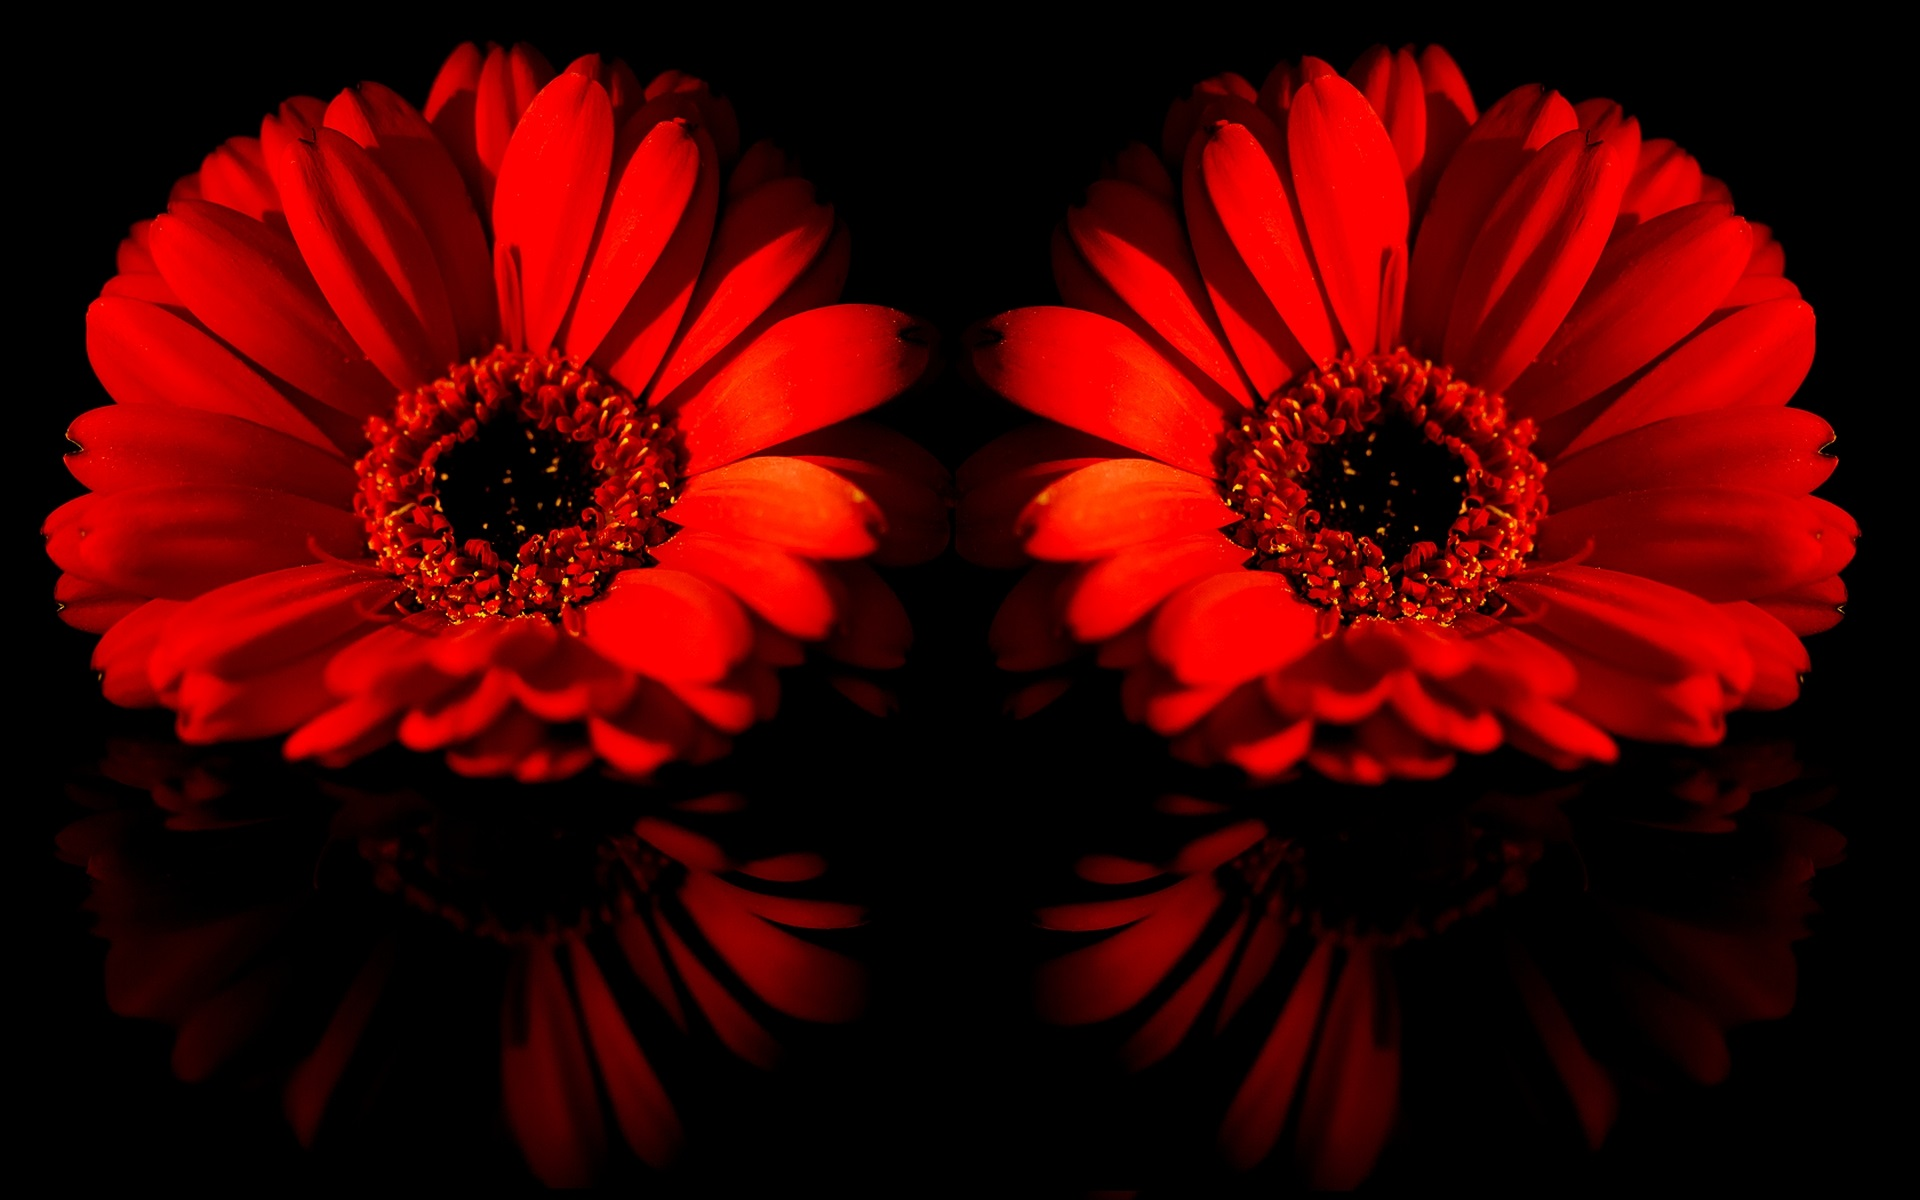 Wallpaper two red daisy flowers 1920x1200 hd picture image download this wallpaper izmirmasajfo